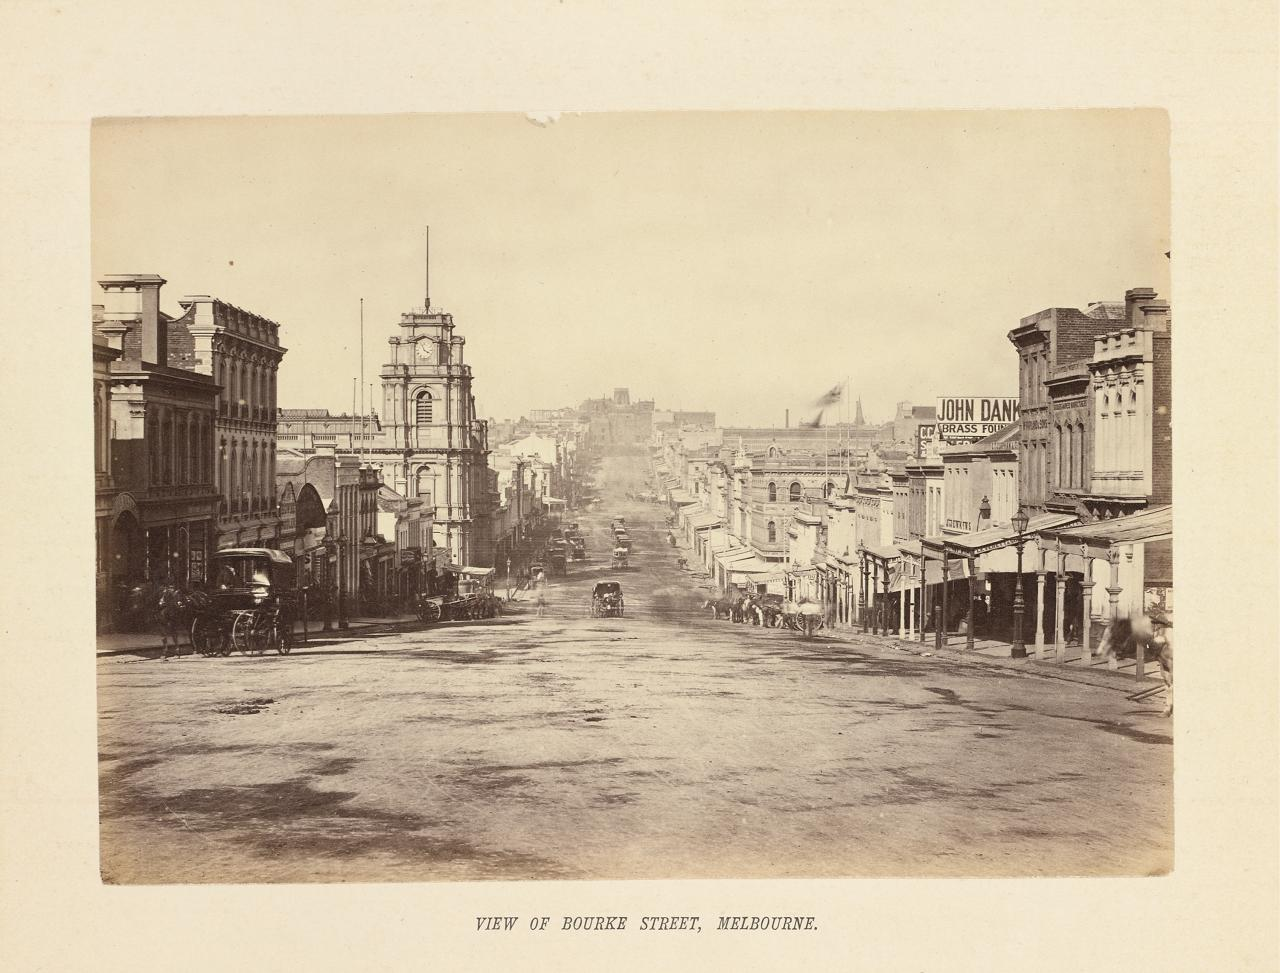 View of Bourke Street, Melbourne